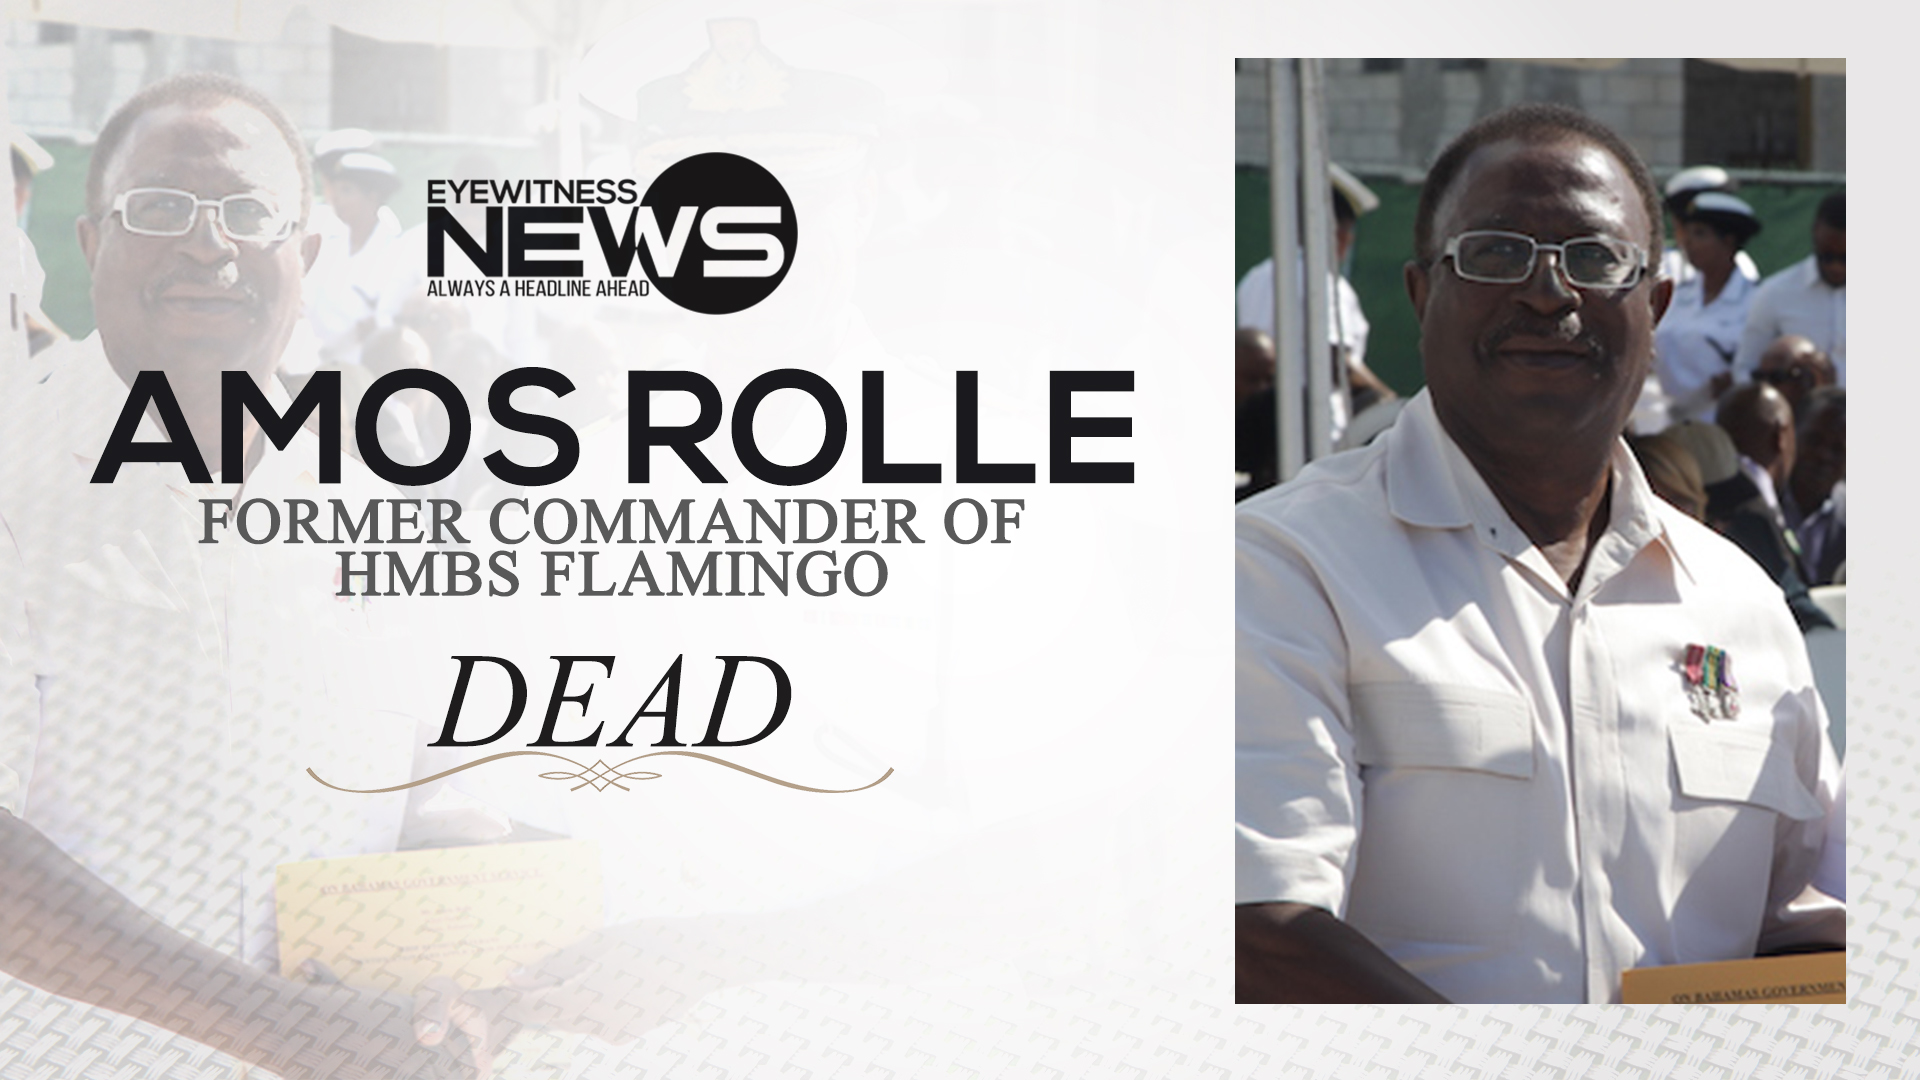 RBDF extends condolences to family of Senior Commander (Retired) Amos Rolle